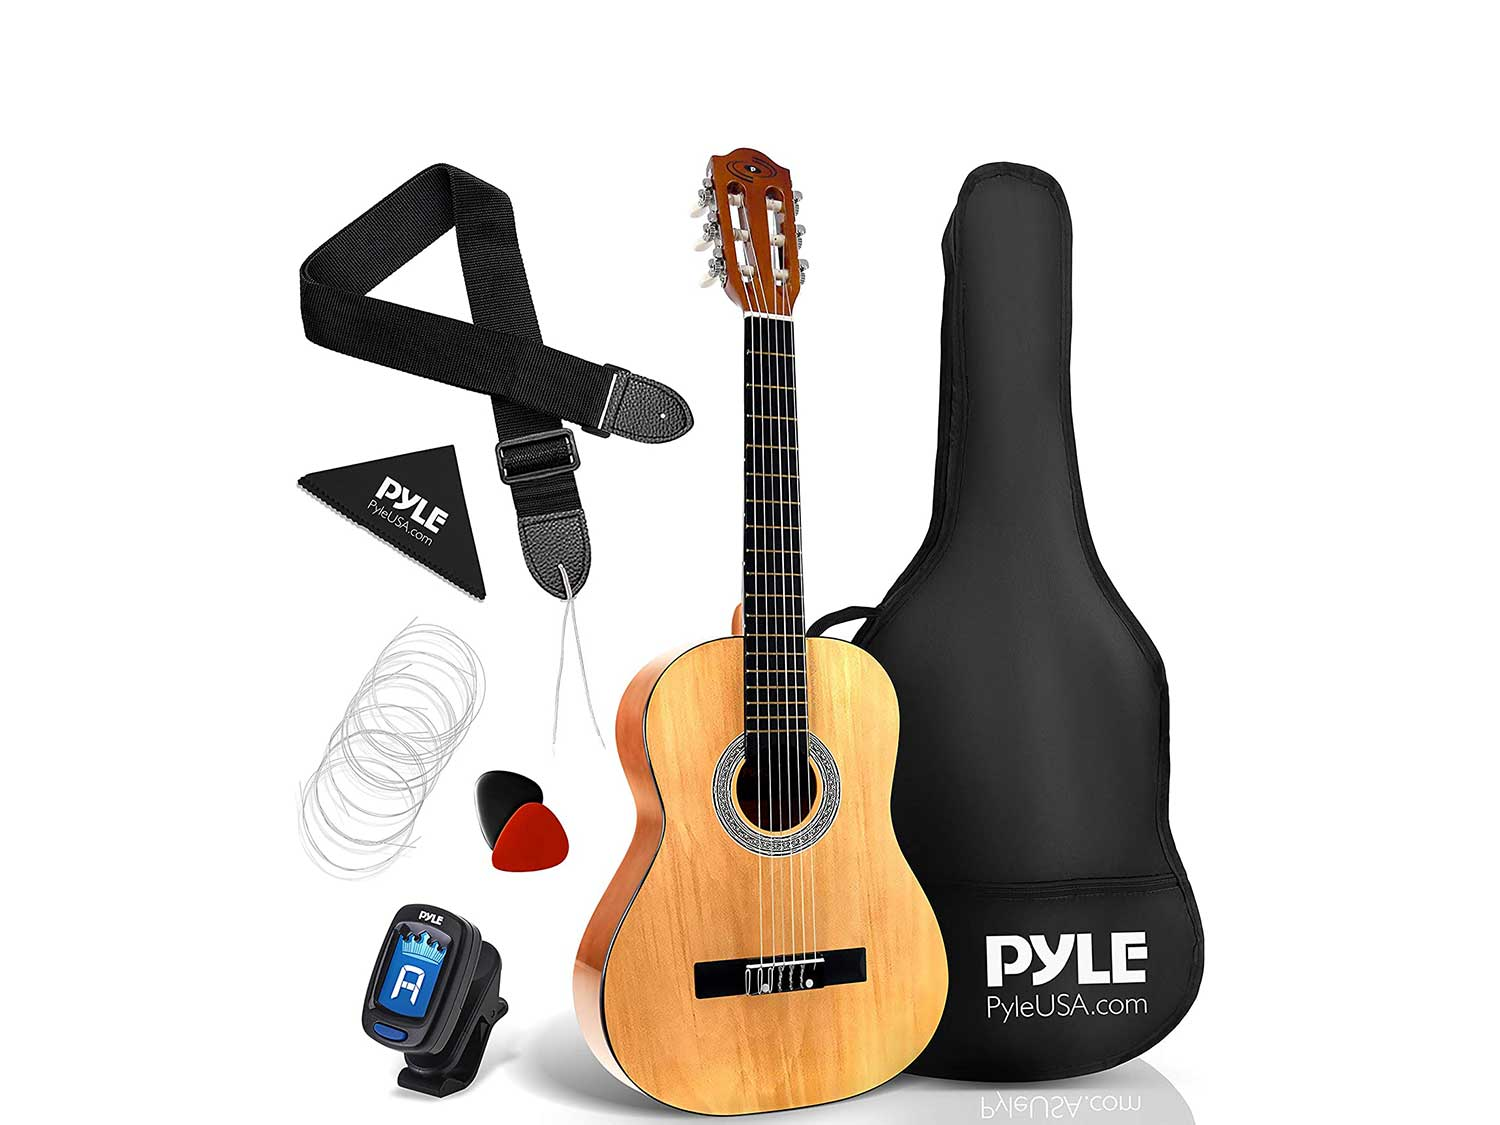 "Pyle 36"" Classical Acoustic Guitar-3/4 Junior Size 6 Linden Wood Guitar w/Gig Bag, Tuner, Nylon Strings, Picks, Strap, for Beginners, Adults, Right, Natural"